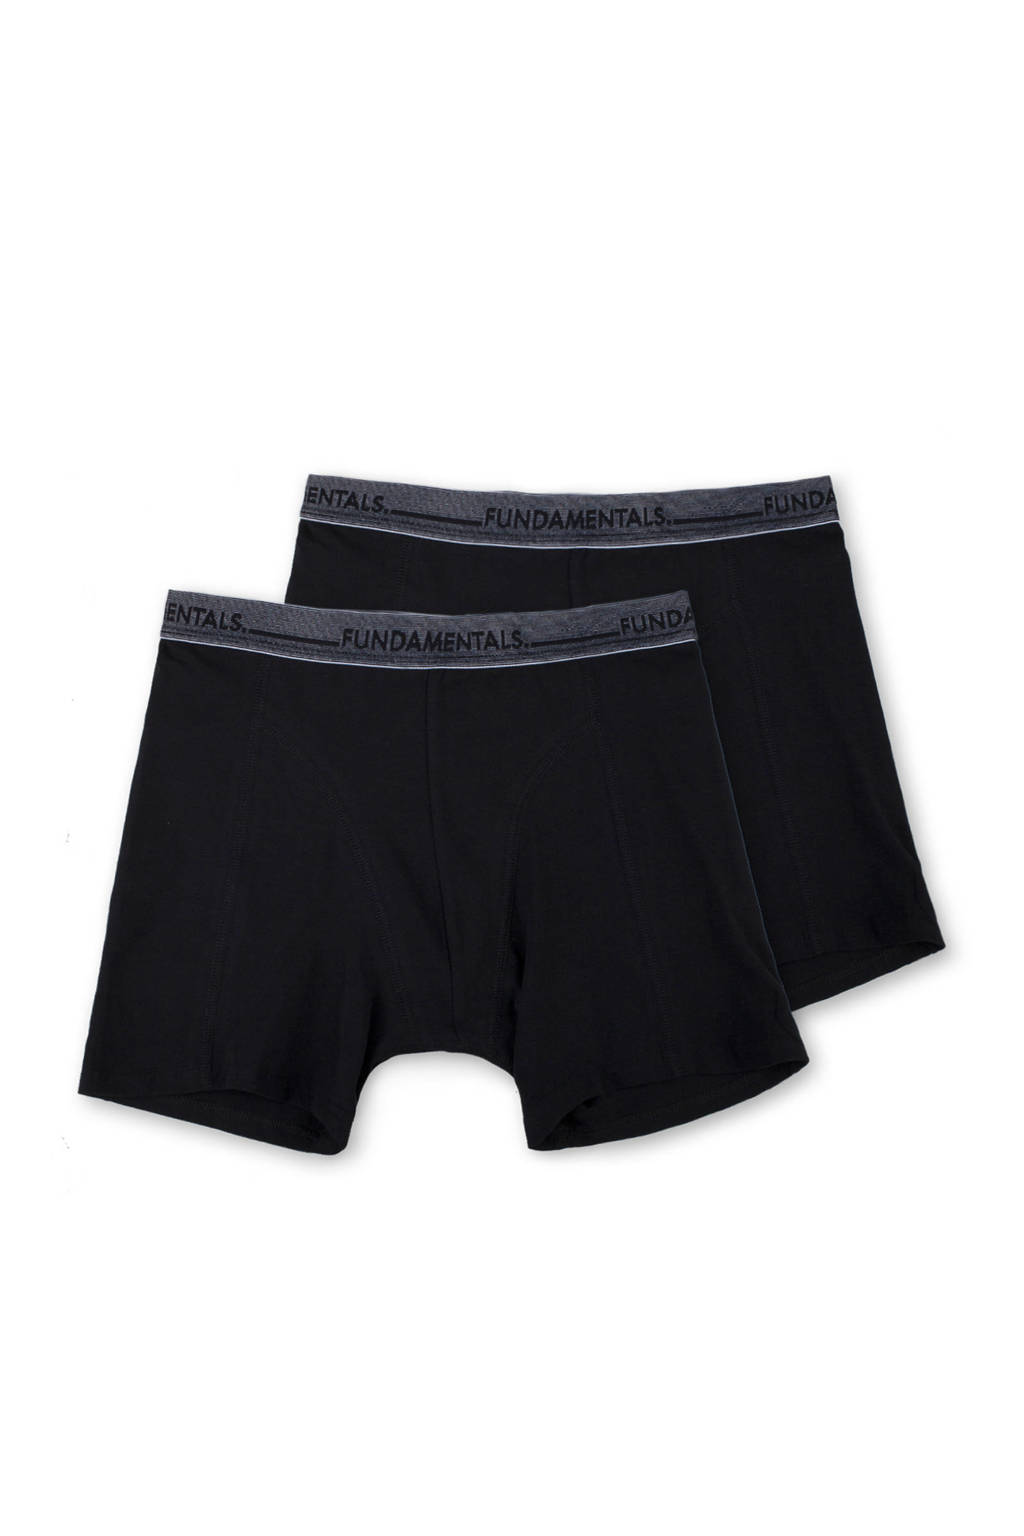 WE Fashion Fundamentals boxershort (set van 2), Zwart